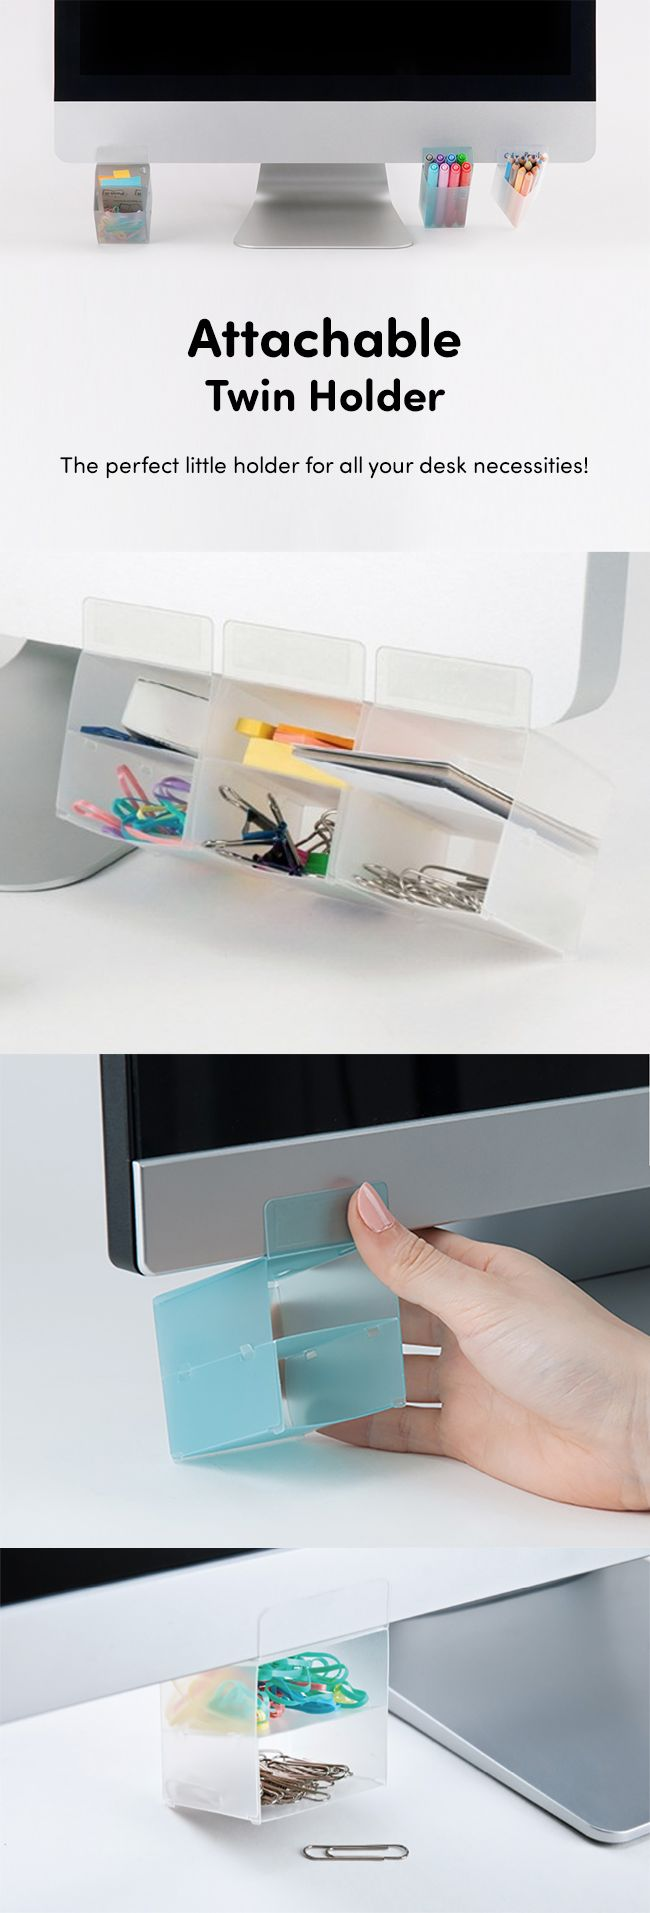 Get out of the way desk clutter! We present the most practical & genius way to organize your daily office supplies! These super cute + helpful attachable supply holders are here to save the day! This convenient, useful holder can be placed on computer monitors, desk edges or bookshelves. The 3-set combo comes in square, triangle & rectangle designs + 5 pastel colors to choose from! You can even use it for your bathroom, kitchen & garage! Say adieu to messy & hello to a million ways to…